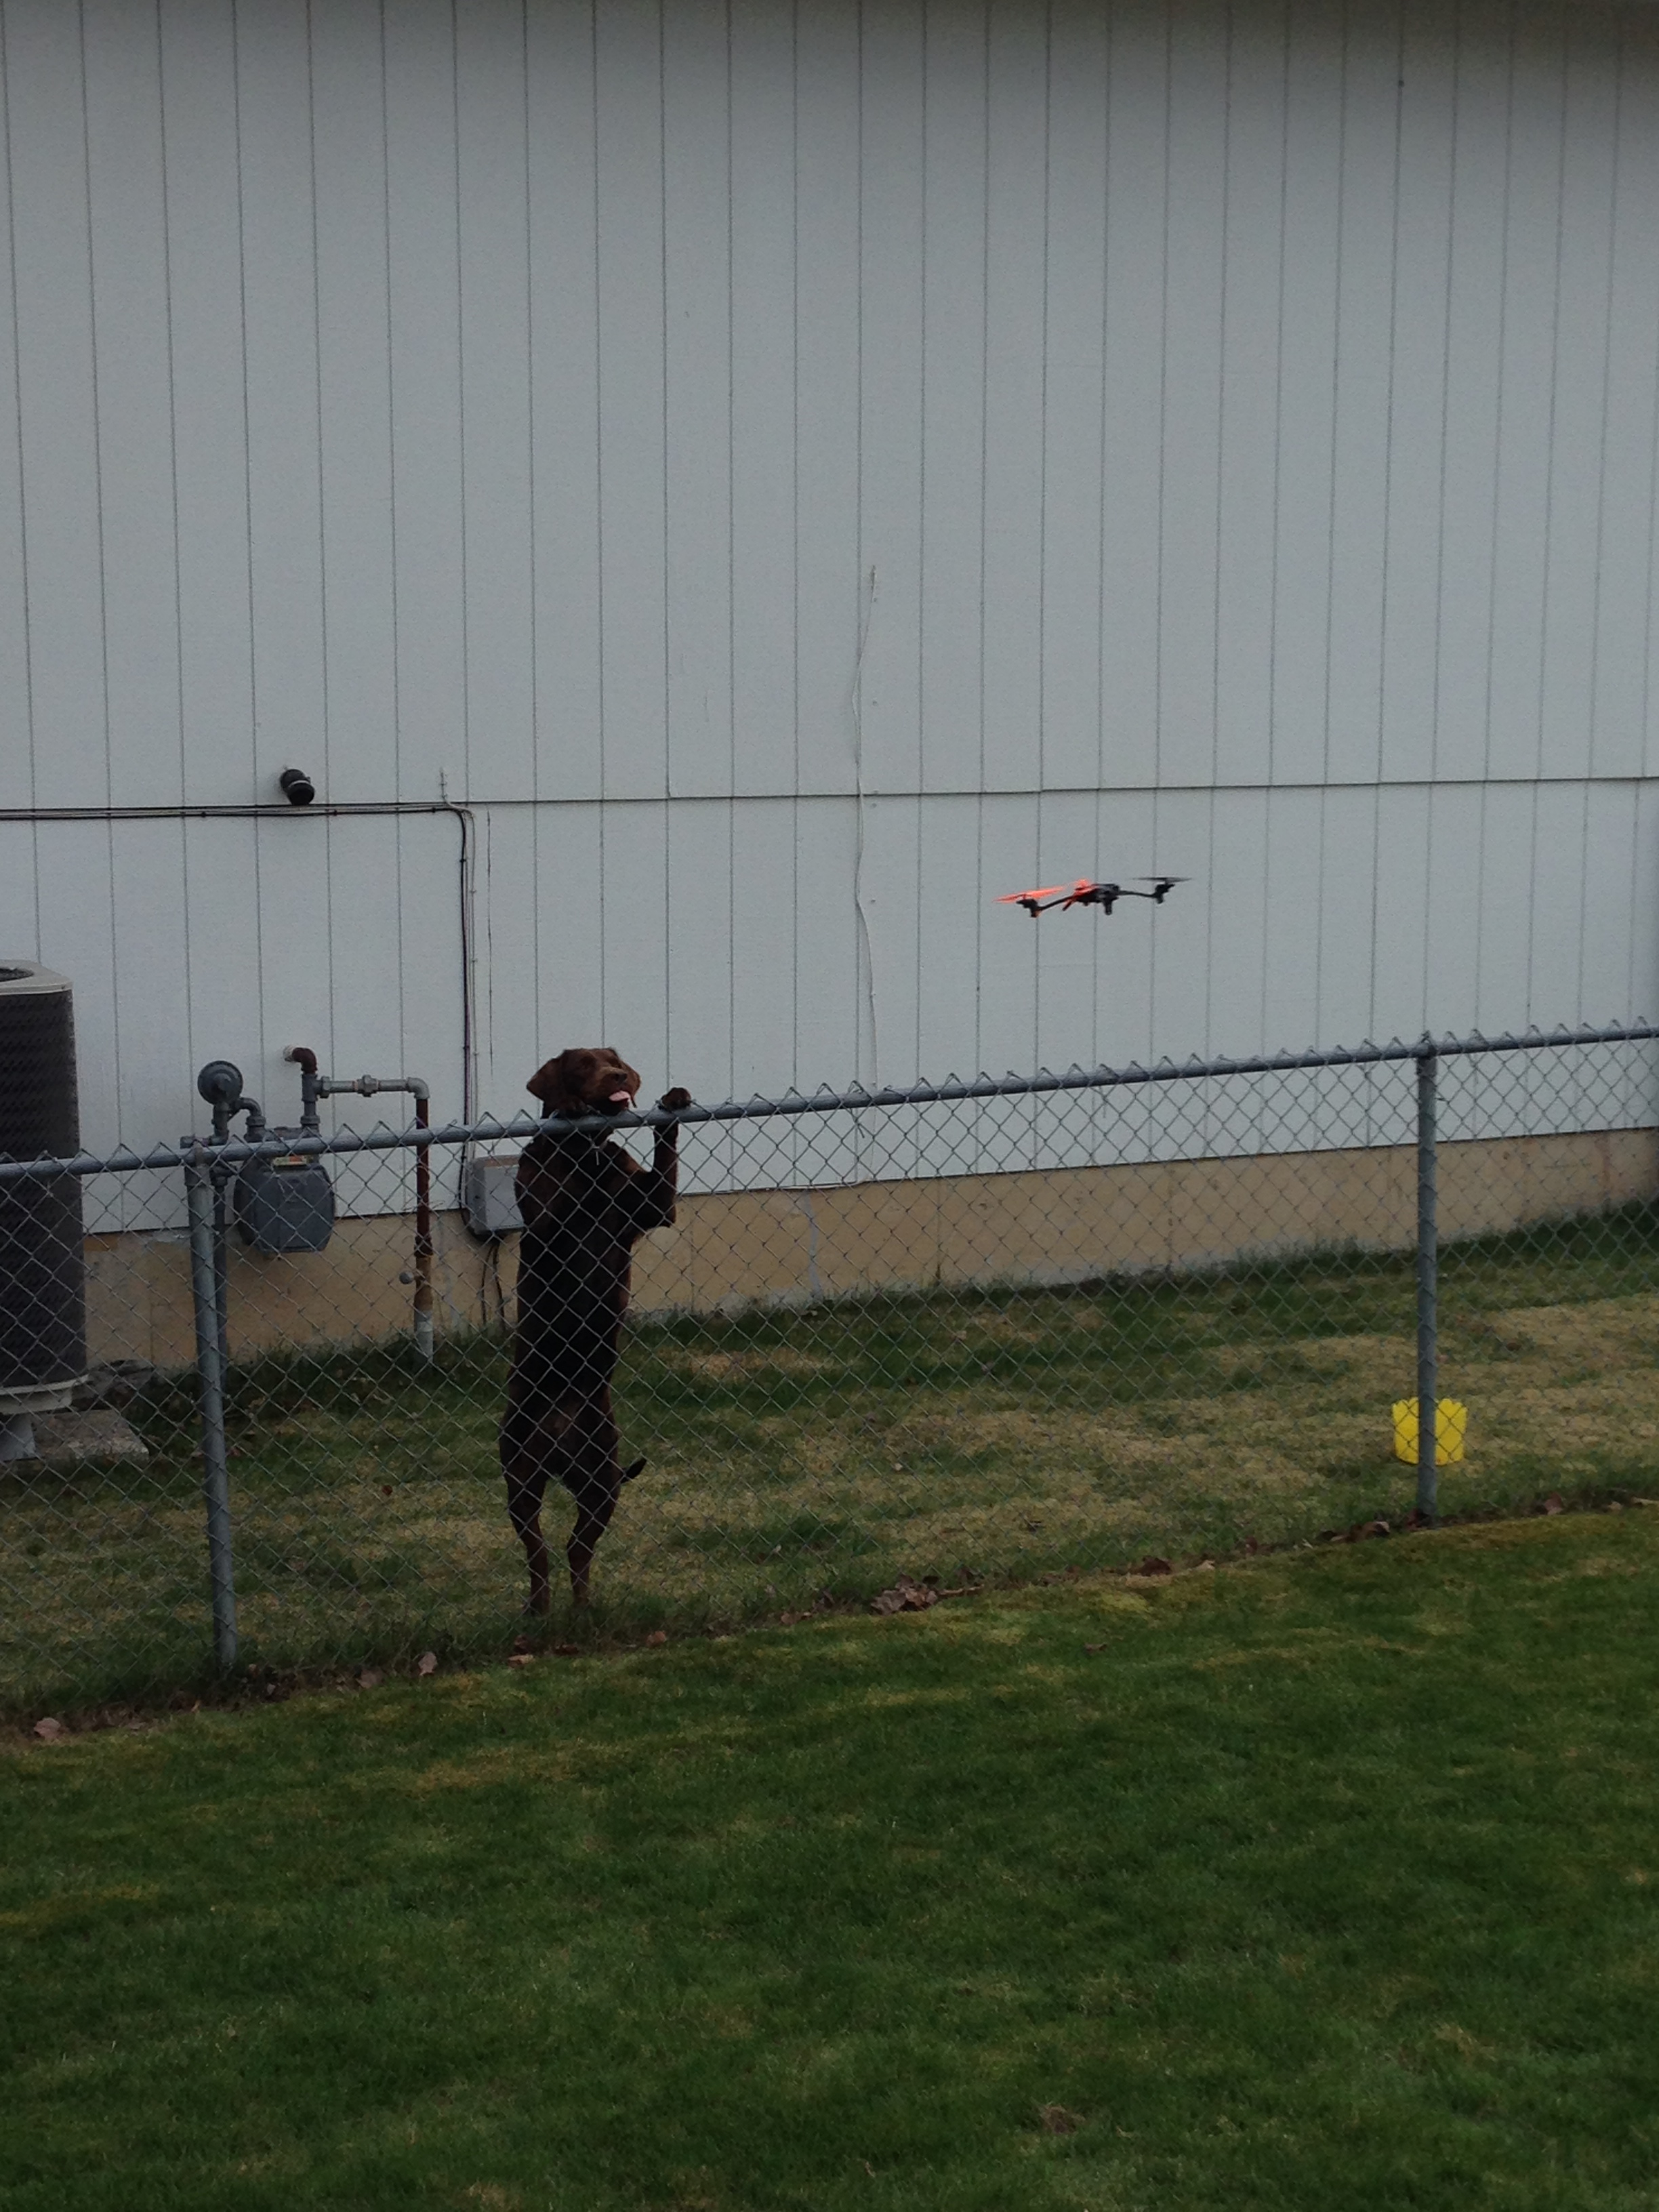 The dog, named Kokanee, went ape over the quadcopter.